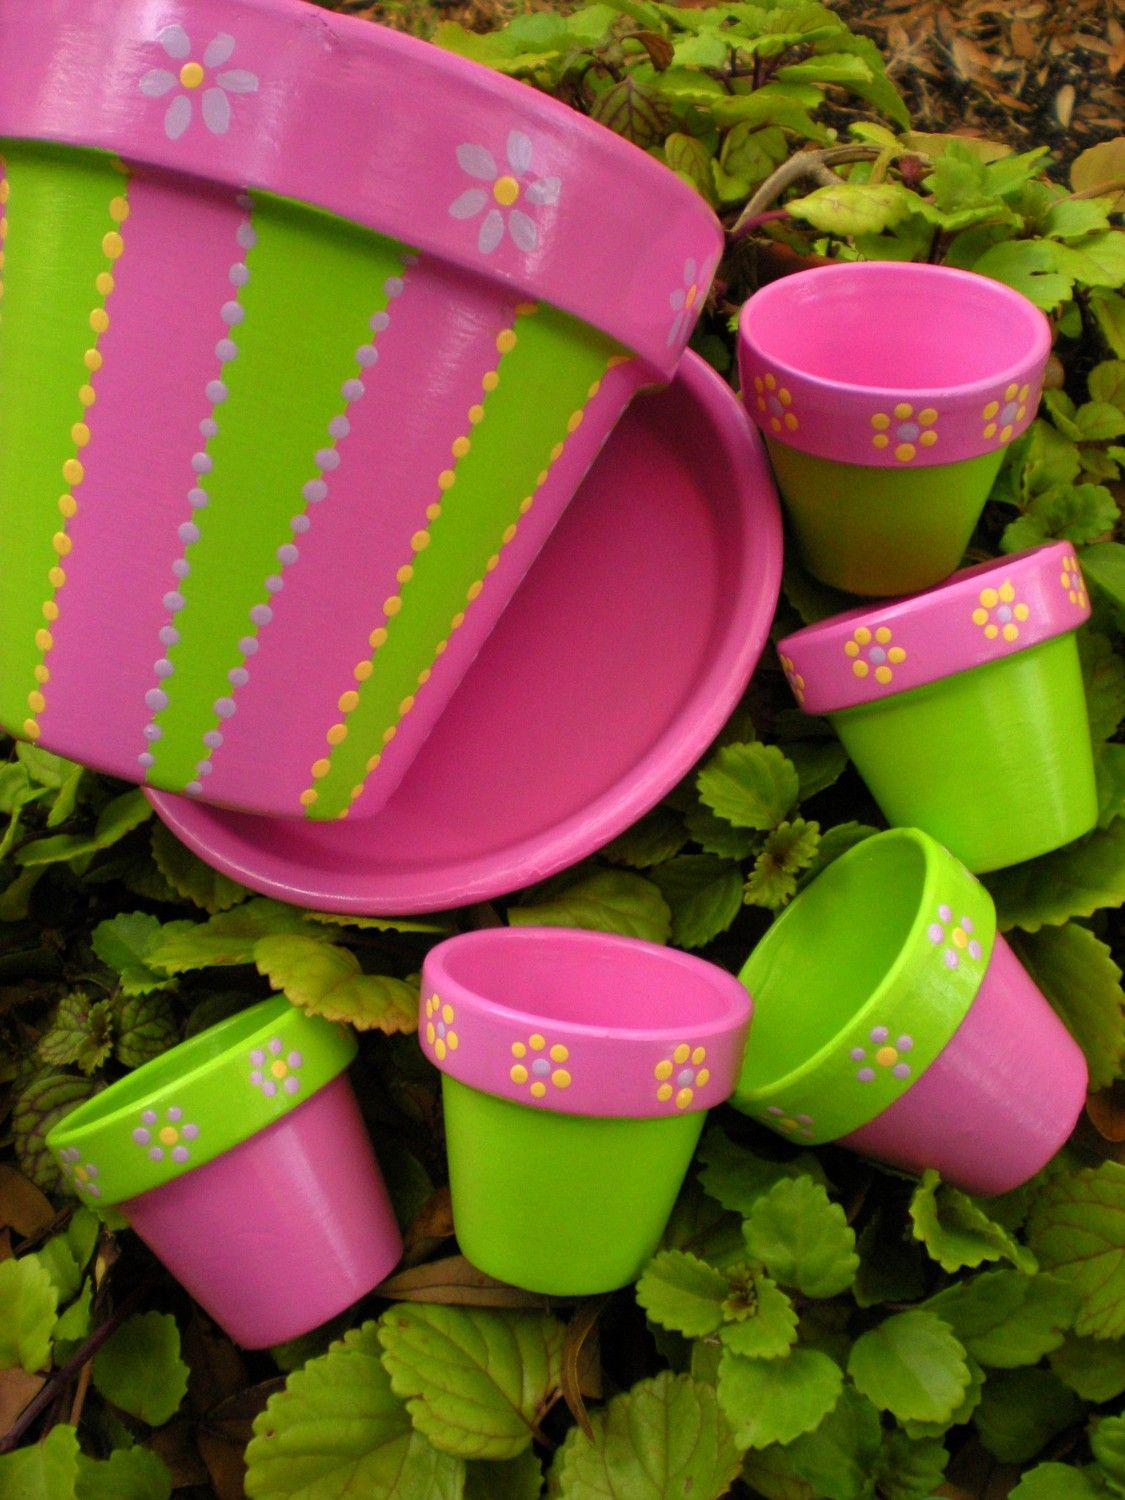 Wedding Favors - Hand Painted Flower Pots with Paisley Design ...